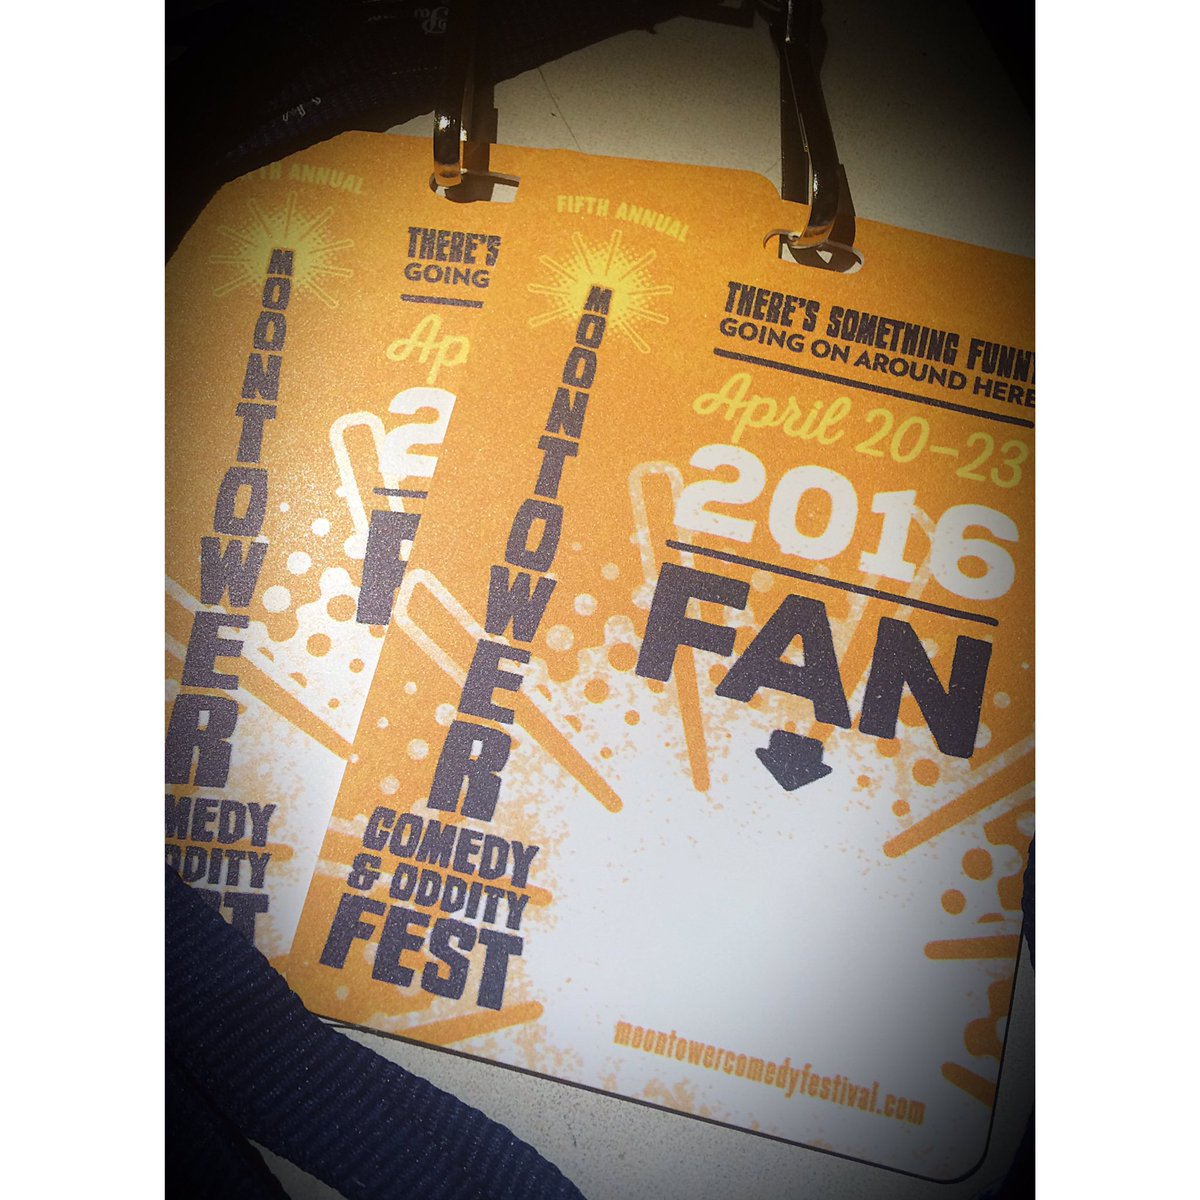 We've got a pair of @MoontowerComedy Fest Fan Badges up for grabs. RT to WIN! https://t.co/kOw8eHfbM9